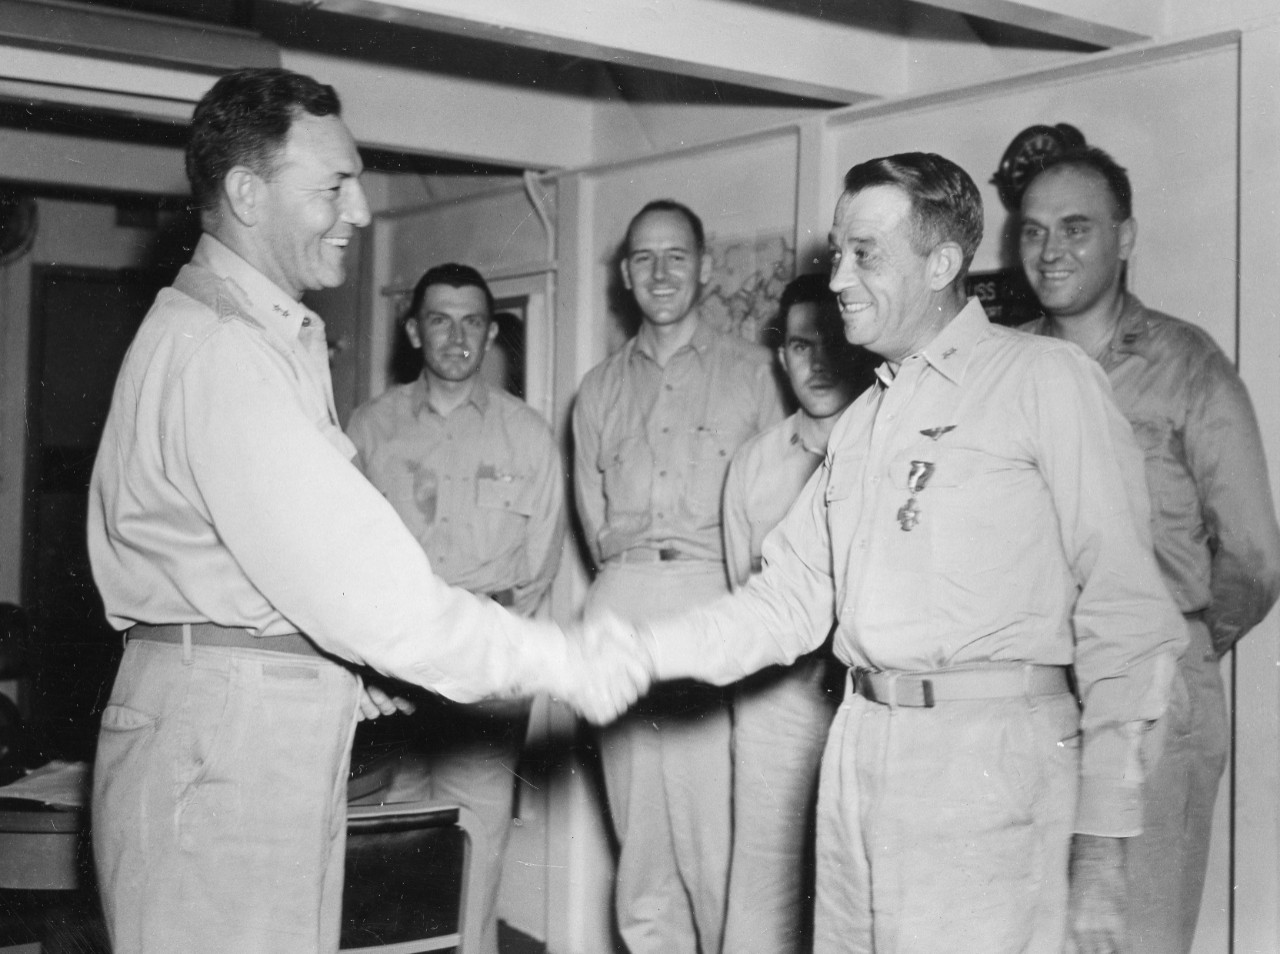 On board Fanshaw Bay, 15 March 1945, Rear Adm. Calvin T. Durgin awards Rear Adm. Clifton Sprague the Navy Cross, honoring the latter's heroic leadership of Taffy 3 off Samar on 25 October 1944. (U.S. Navy Photograph 80-G-364246, National Archives and Records Administration, Still Pictures Division, College Park, Md.)